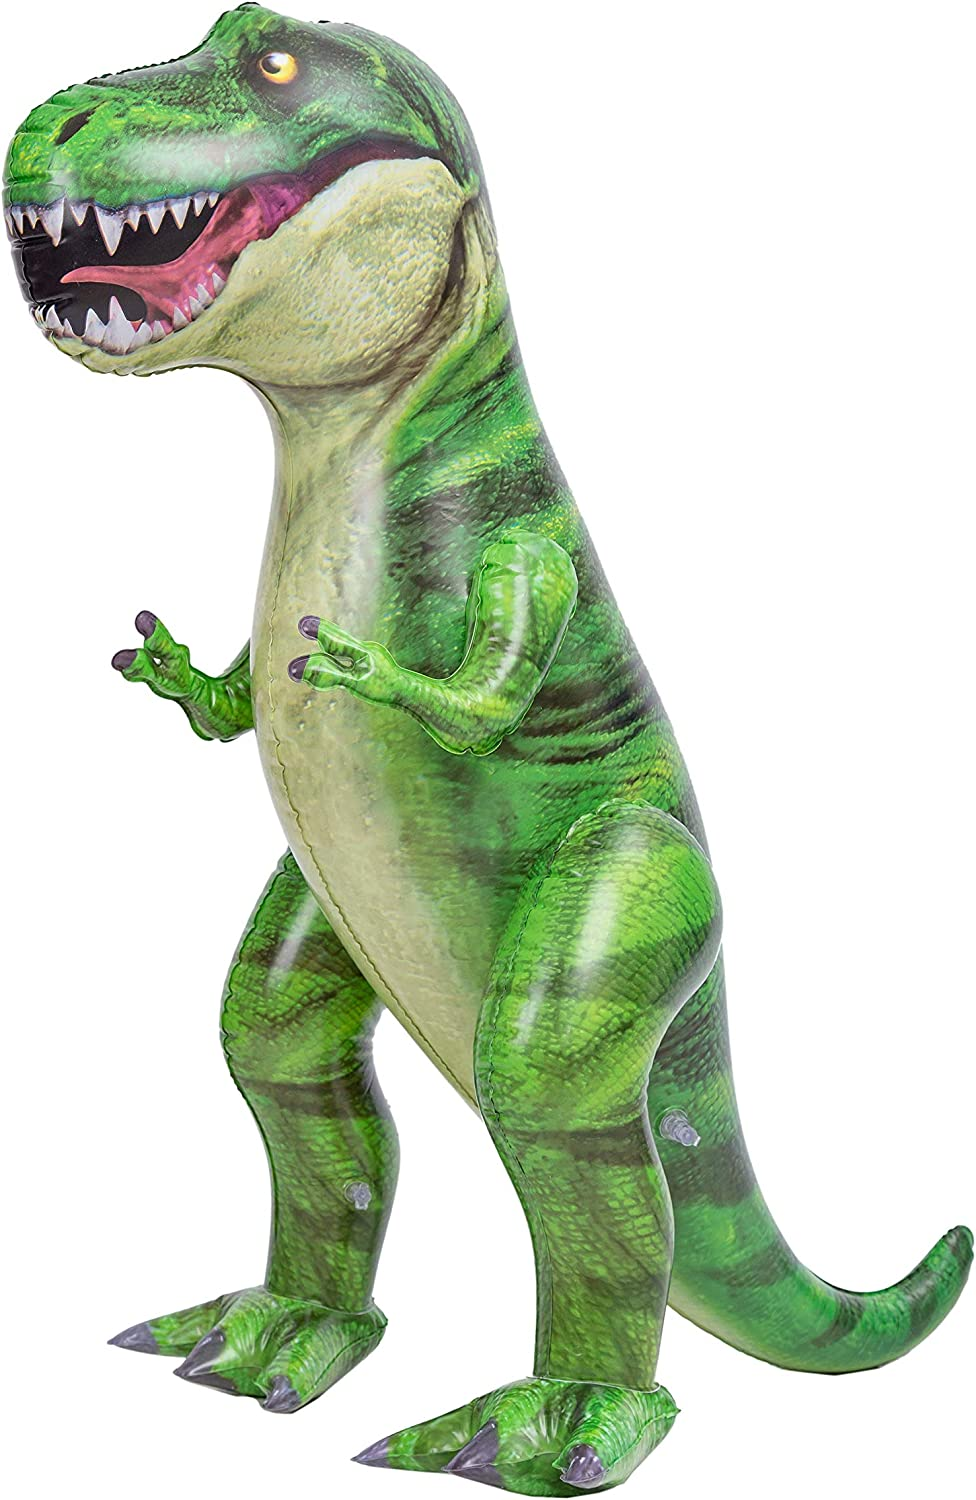 "JOYIN 37"" T-Rex Dinosaur Inflatable, Tyrannosaurus Rex Inflatable Dinosaur Toy for Pool Party Decorations, Dinosaur Birthday Party Gift for Kids and Adults"